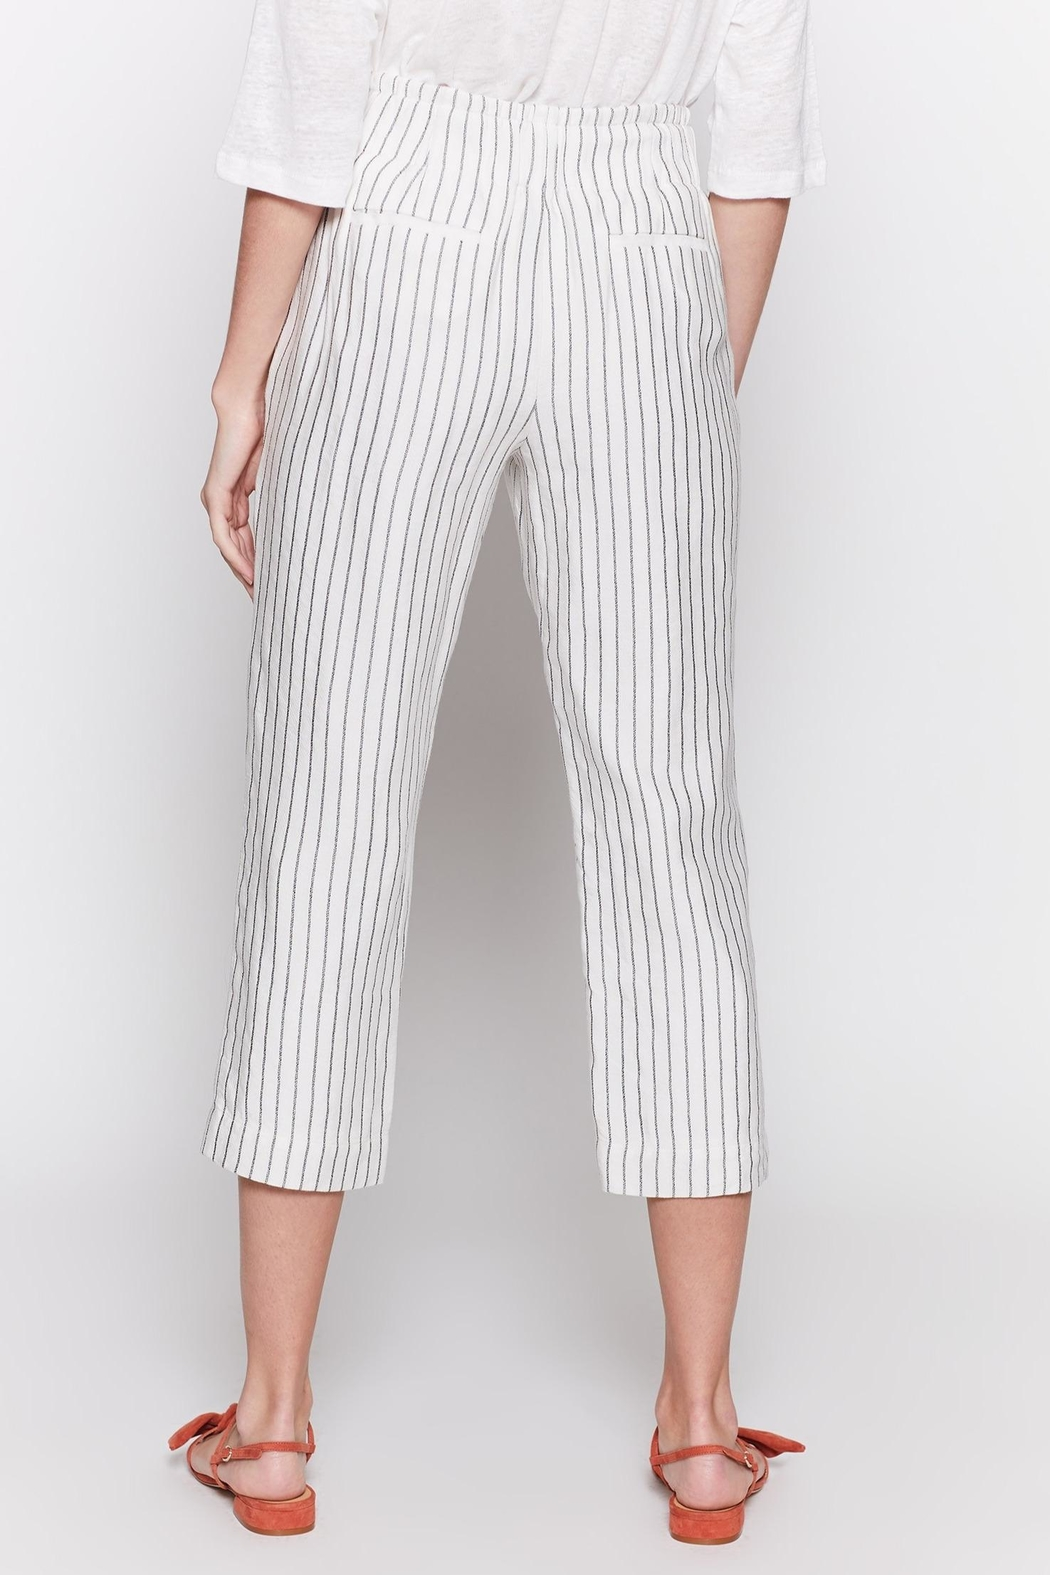 Joie Araona Porcelain Pants - Back Cropped Image